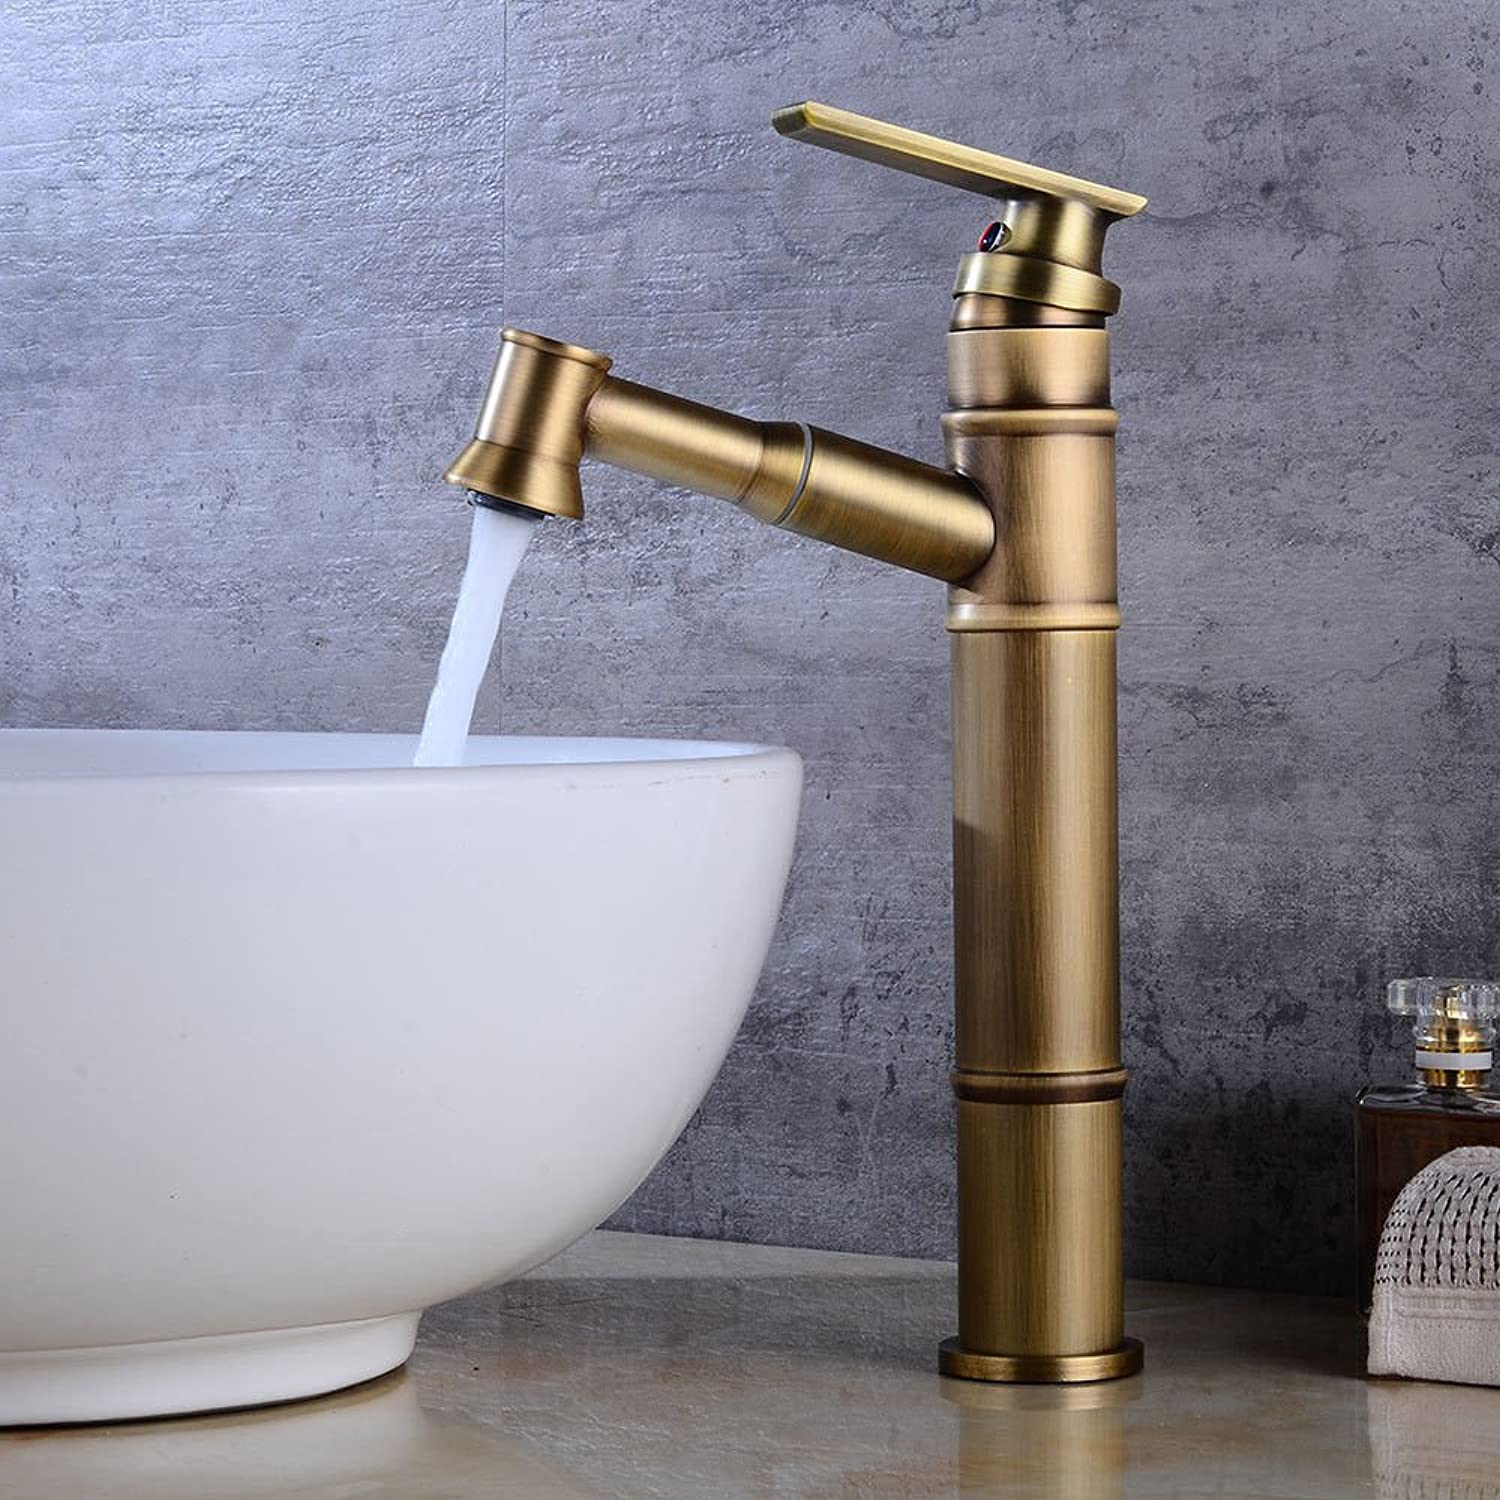 AQMMi Basin Taps Bathroom Sink Faucet Antique Pull-Out 1 Hole Hot and Cold Water Single Lever Single Lever Bathroom Sink Faucet Basin Mixer Tap